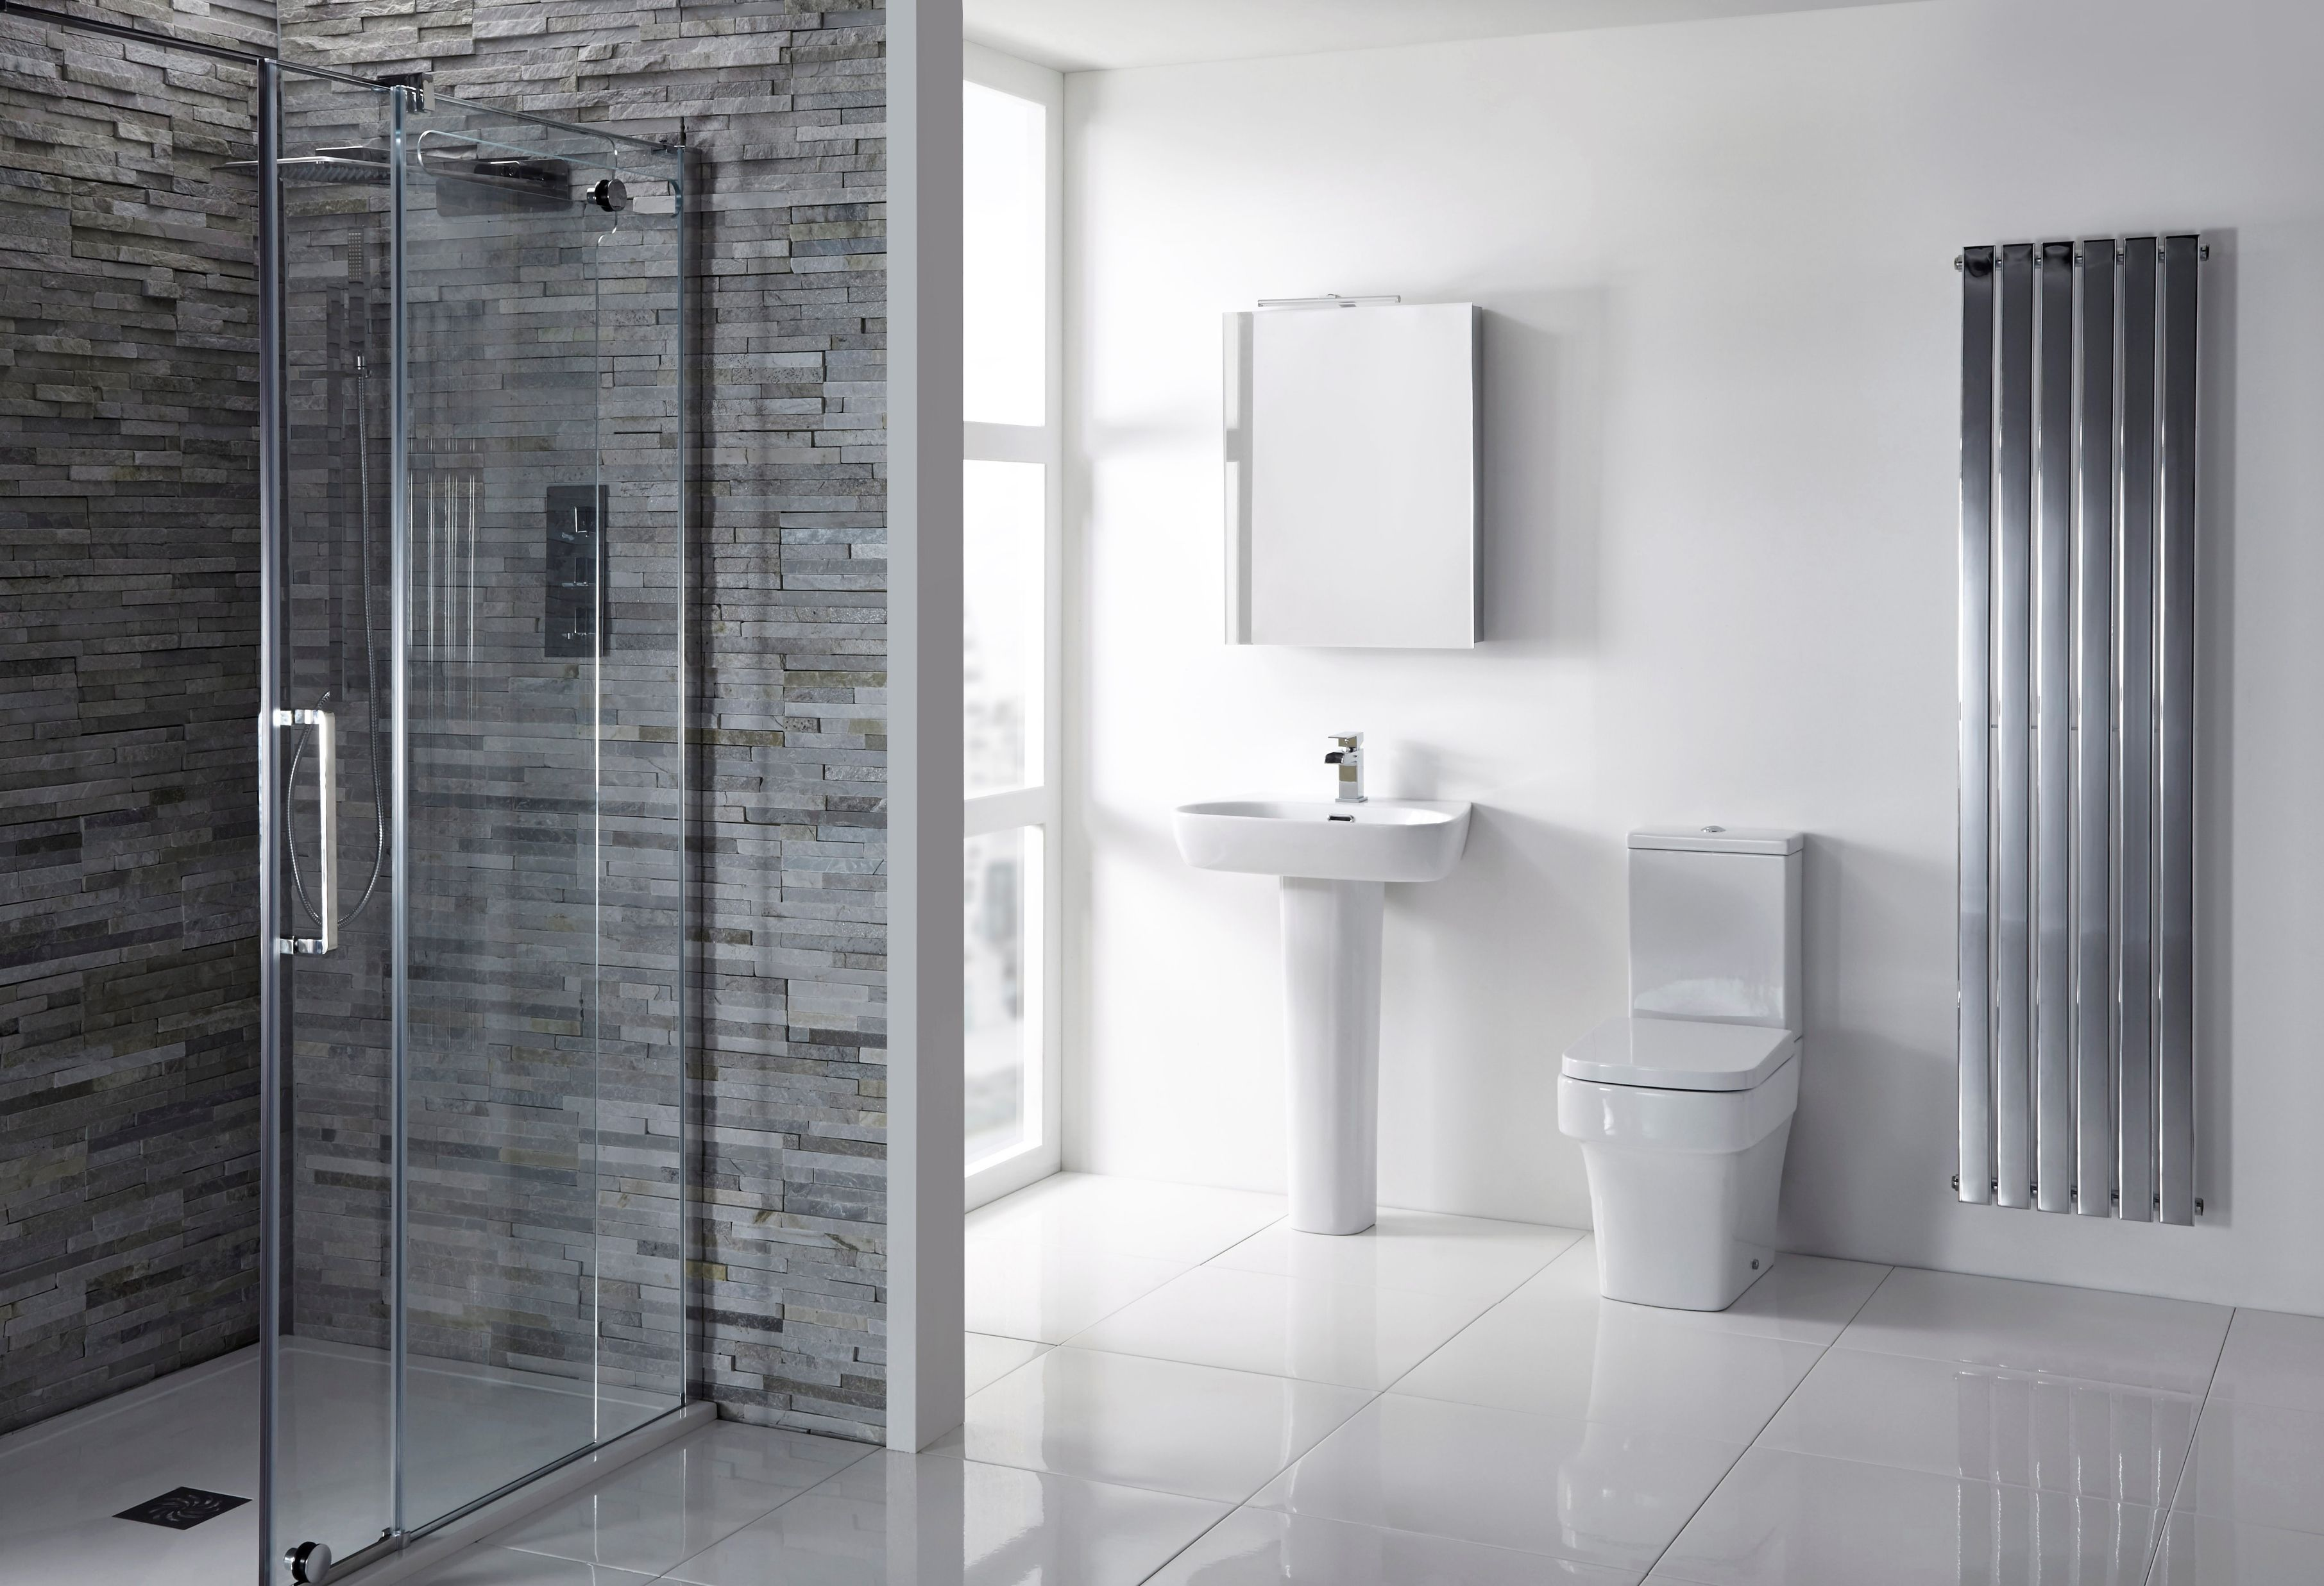 We Strive From Making Our Customers Happy Throughout Their Entire New Bathroom Experience Bnic Ltd Specialise In Complete Bathroom Installations With Over 15 Y